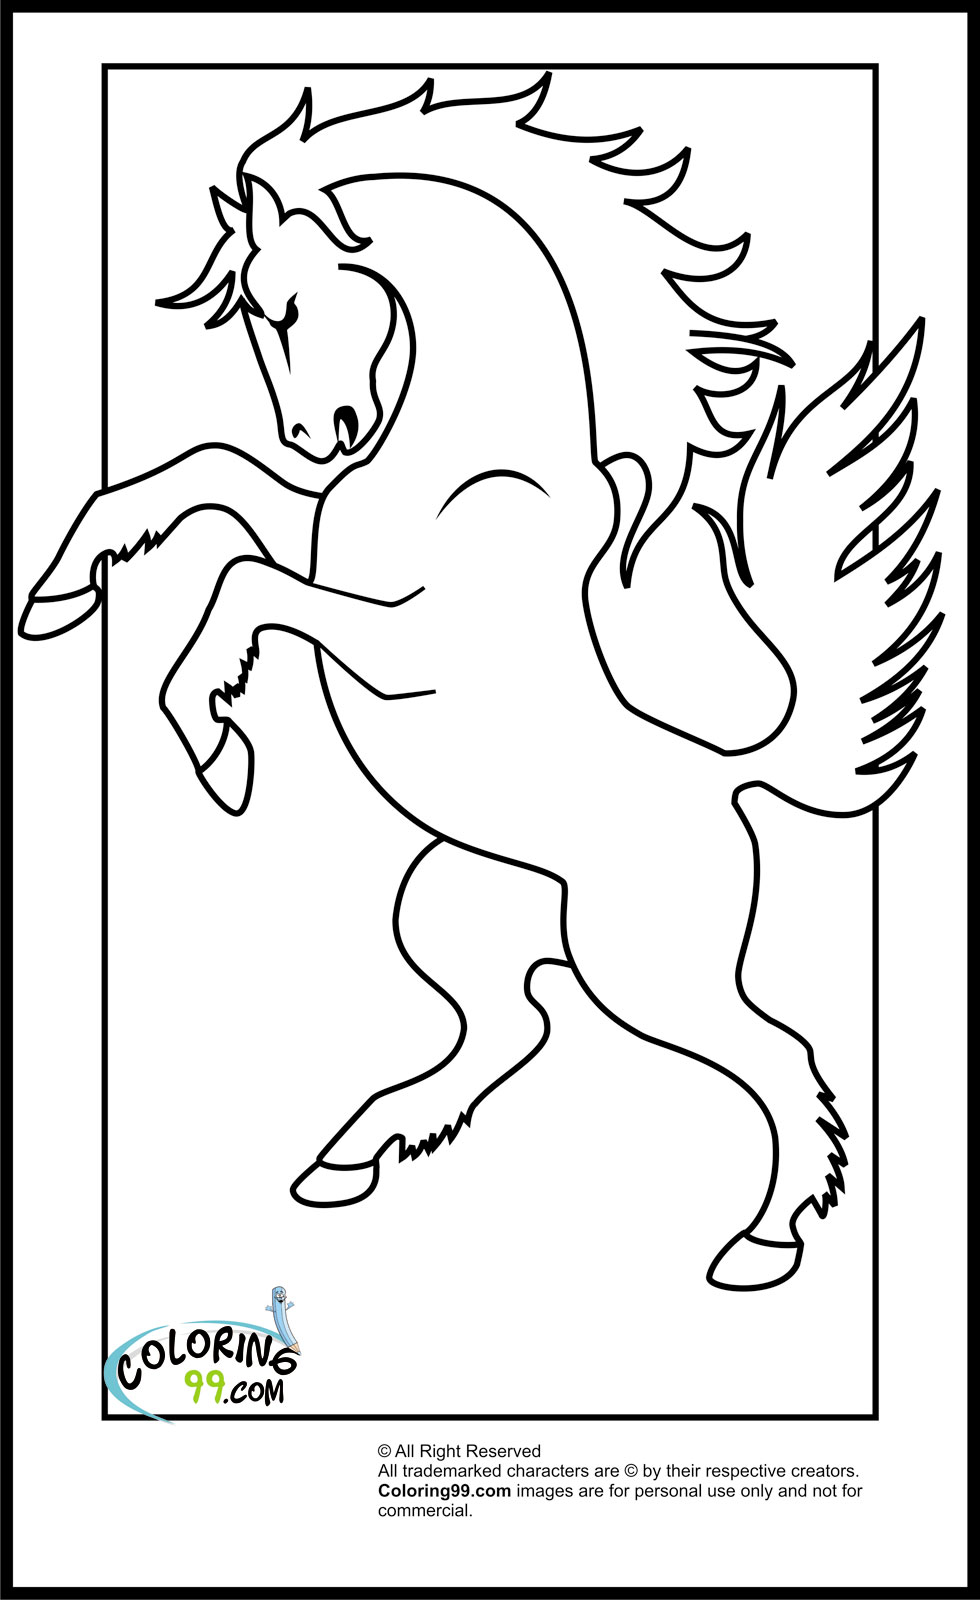 Cool Horse Coloring Pages For Kids